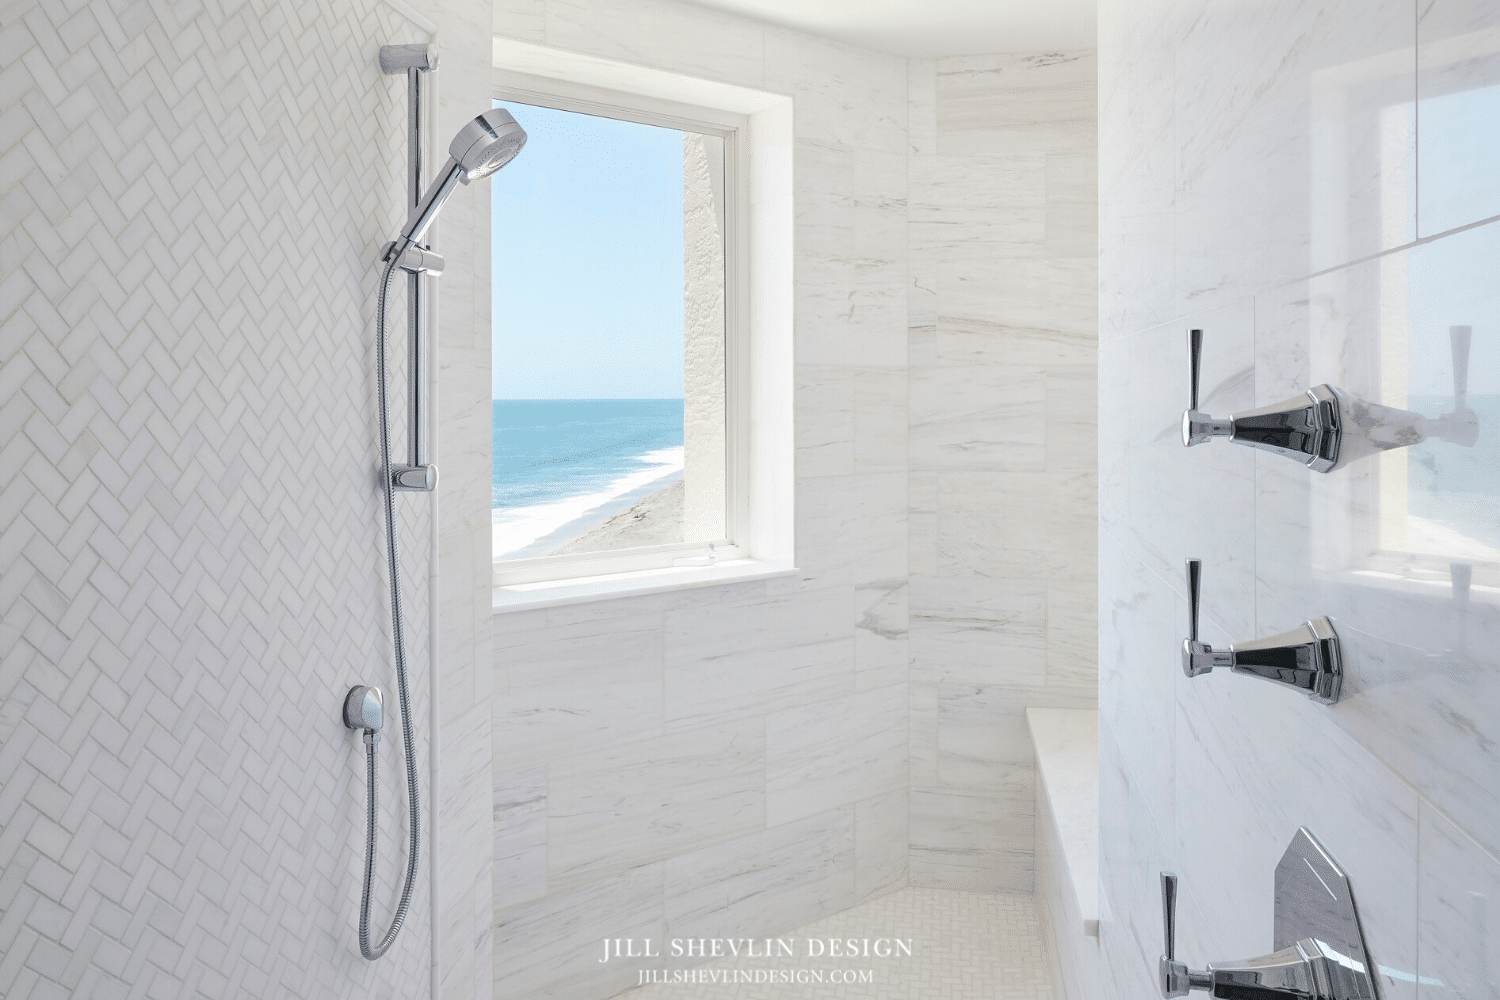 White Marble Shower with Ocean ViewMaster Bath Remodel Jill Shelvin Design Jupiter Island white Marble shower